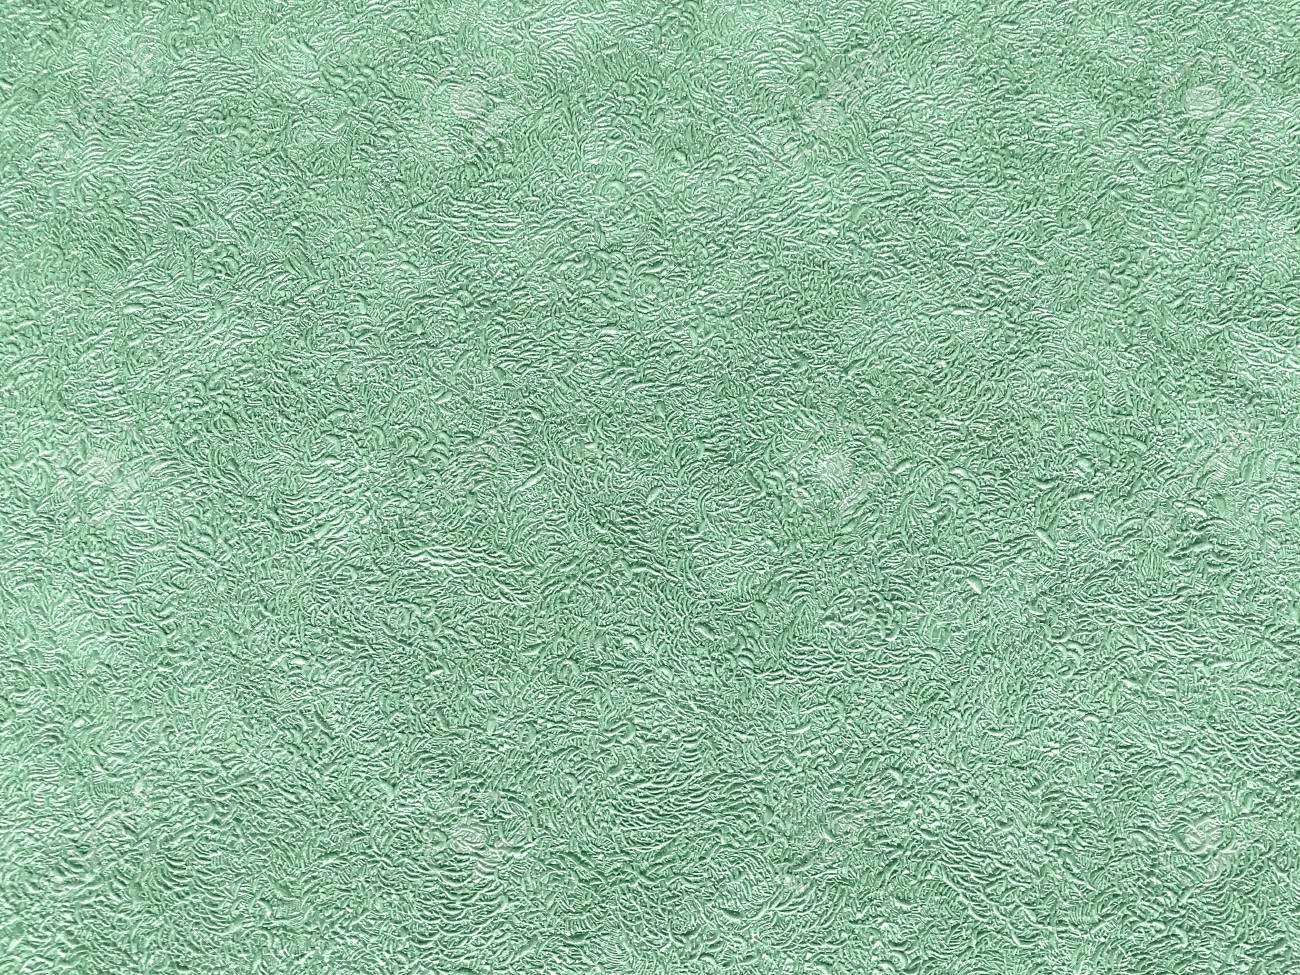 Texture Of Light Green Wallpaper With A Curly Pattern Cyan Paper